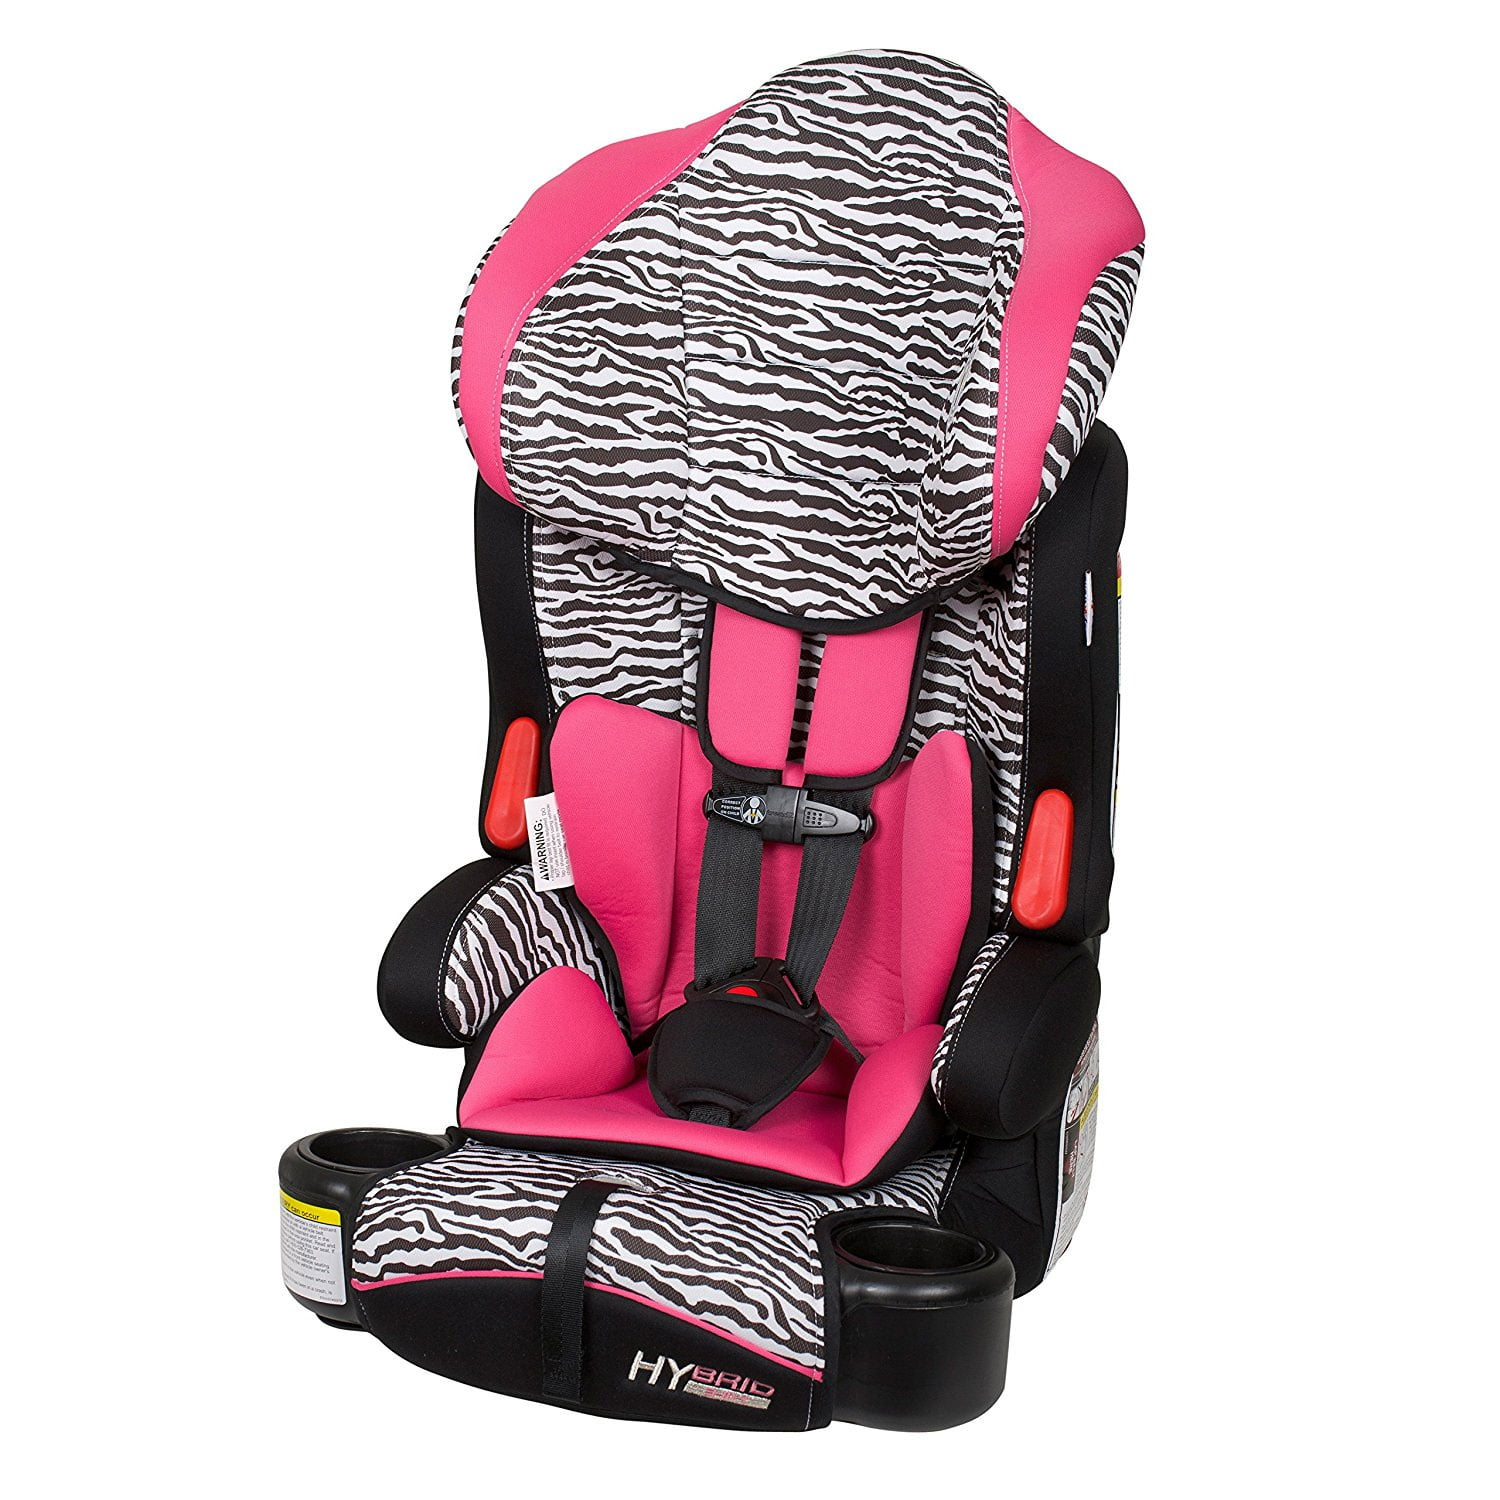 Baby Trend Hybrid 3-in-1 Harness Booster Car Seat, Carrie